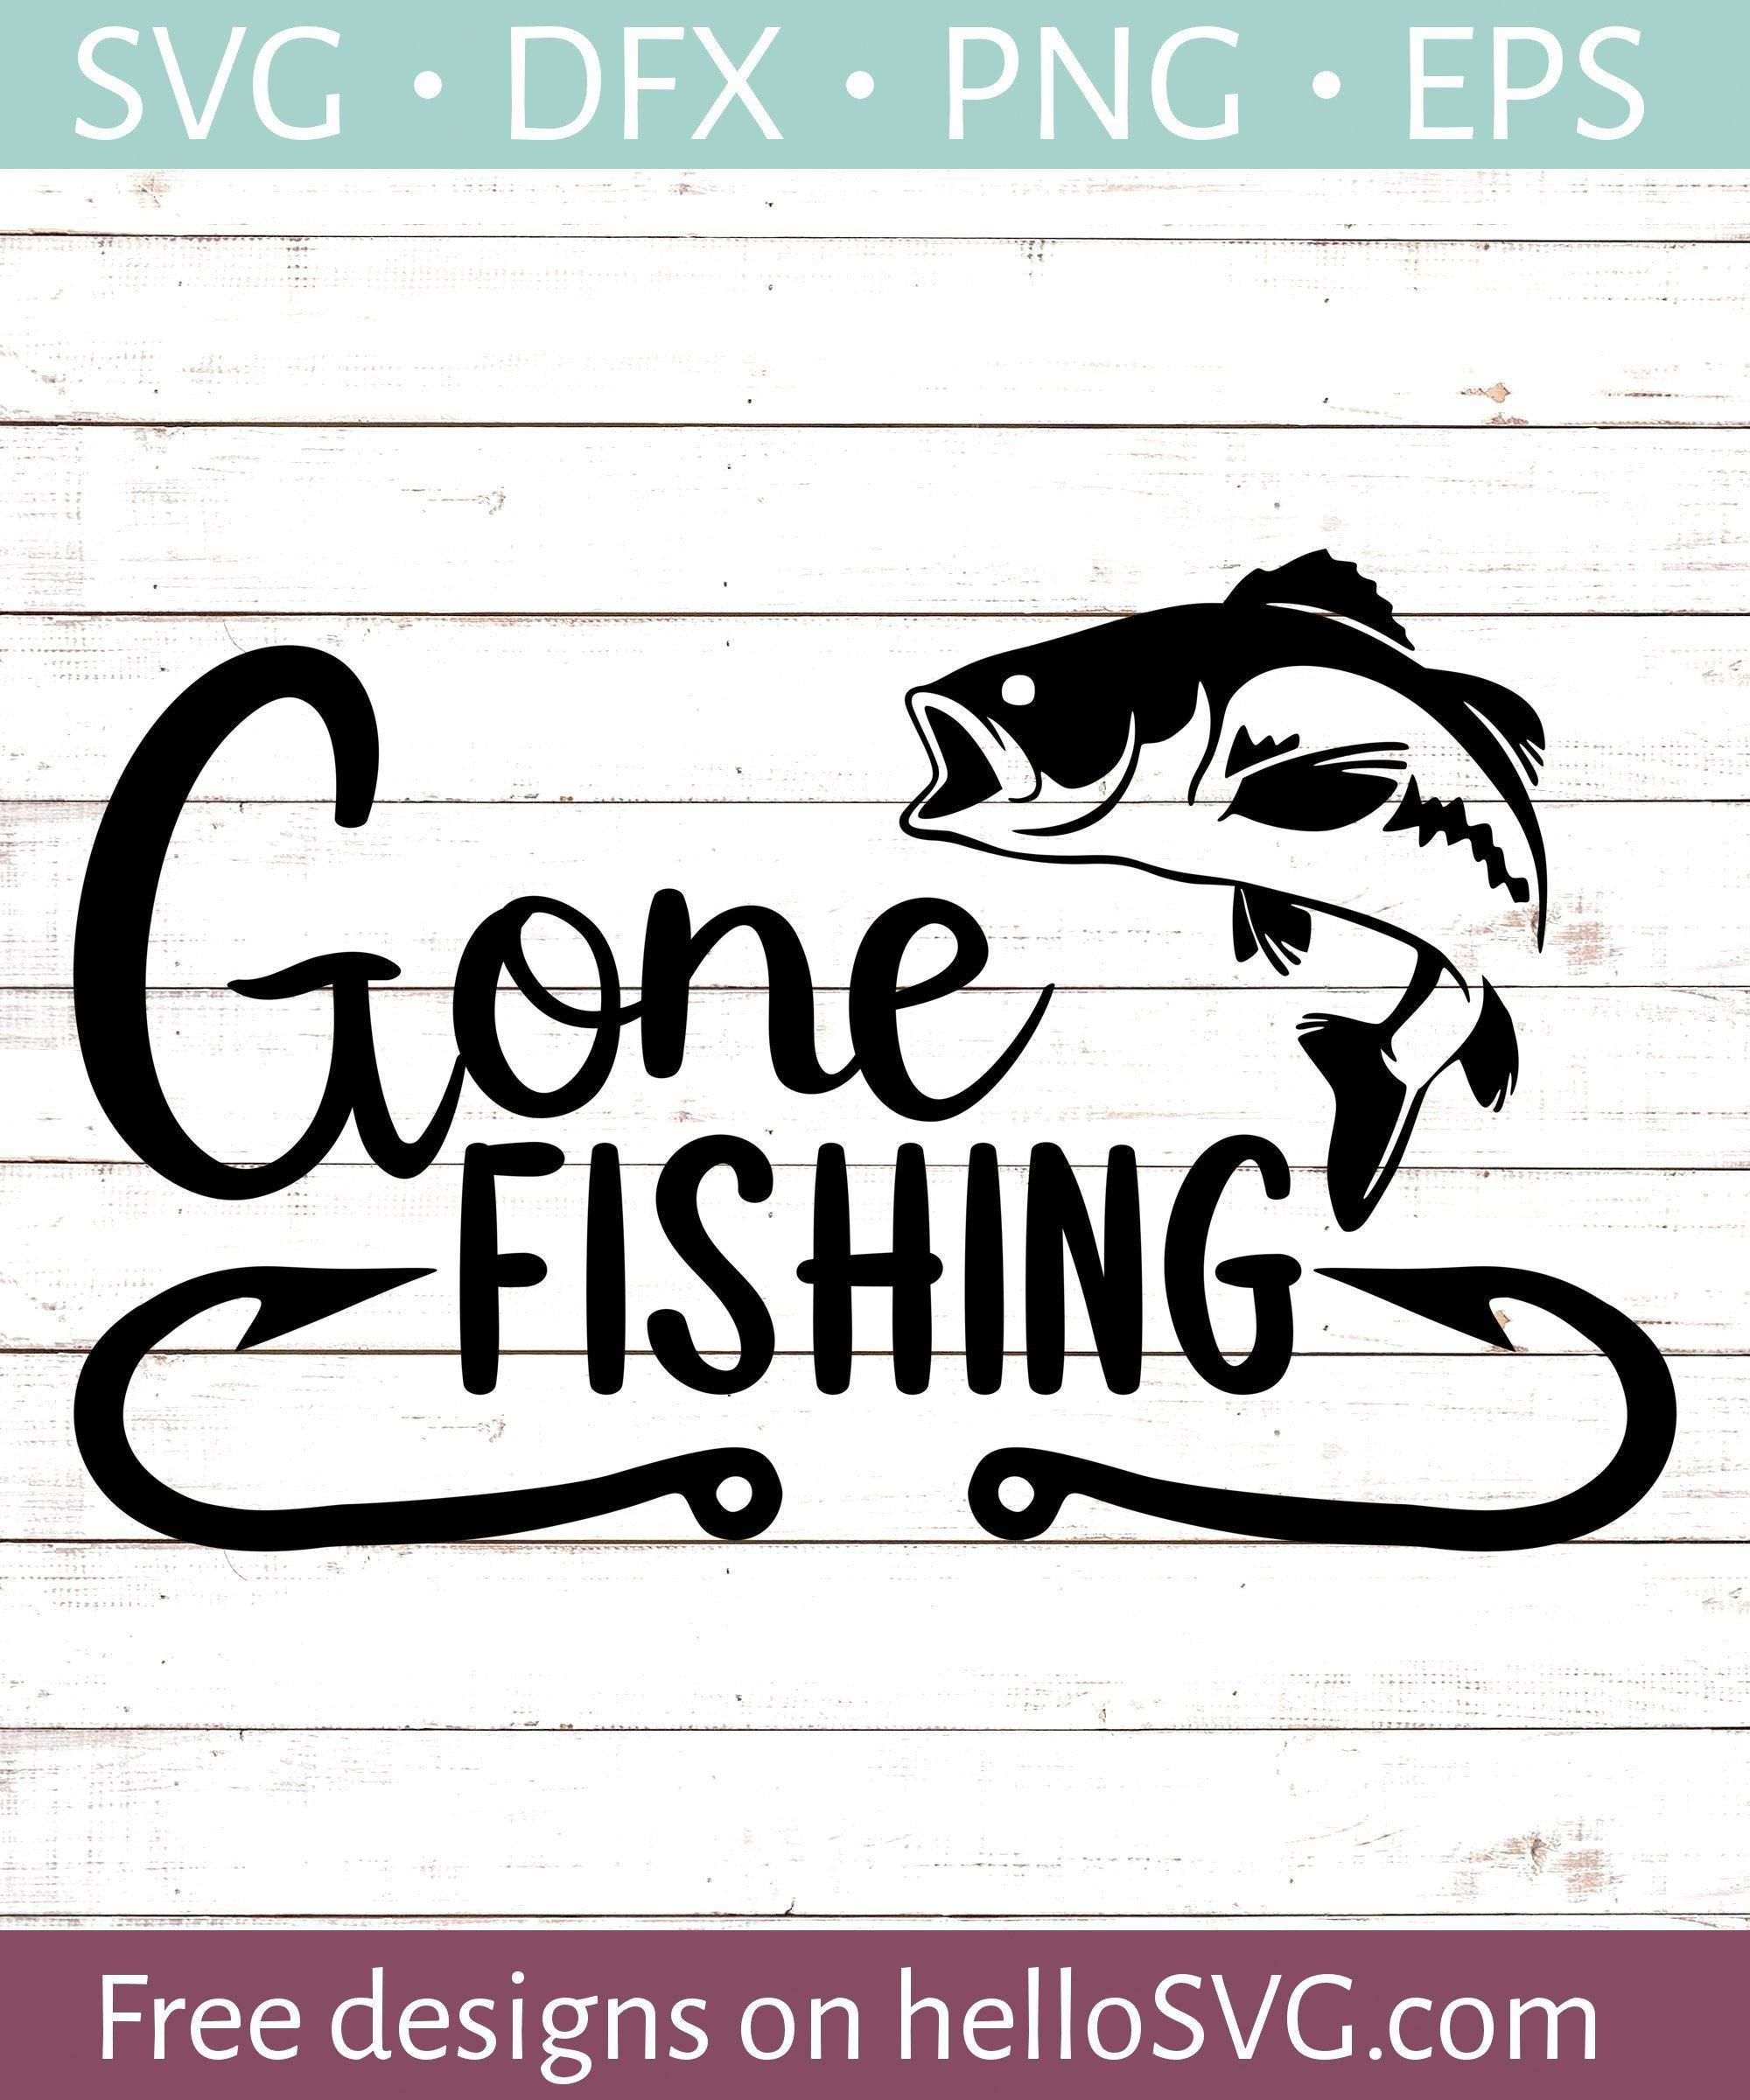 Download Fishing Svg Eps Cut File Keepin It Reel Fishing Quote Digital Art Collectibles Delage Com Br